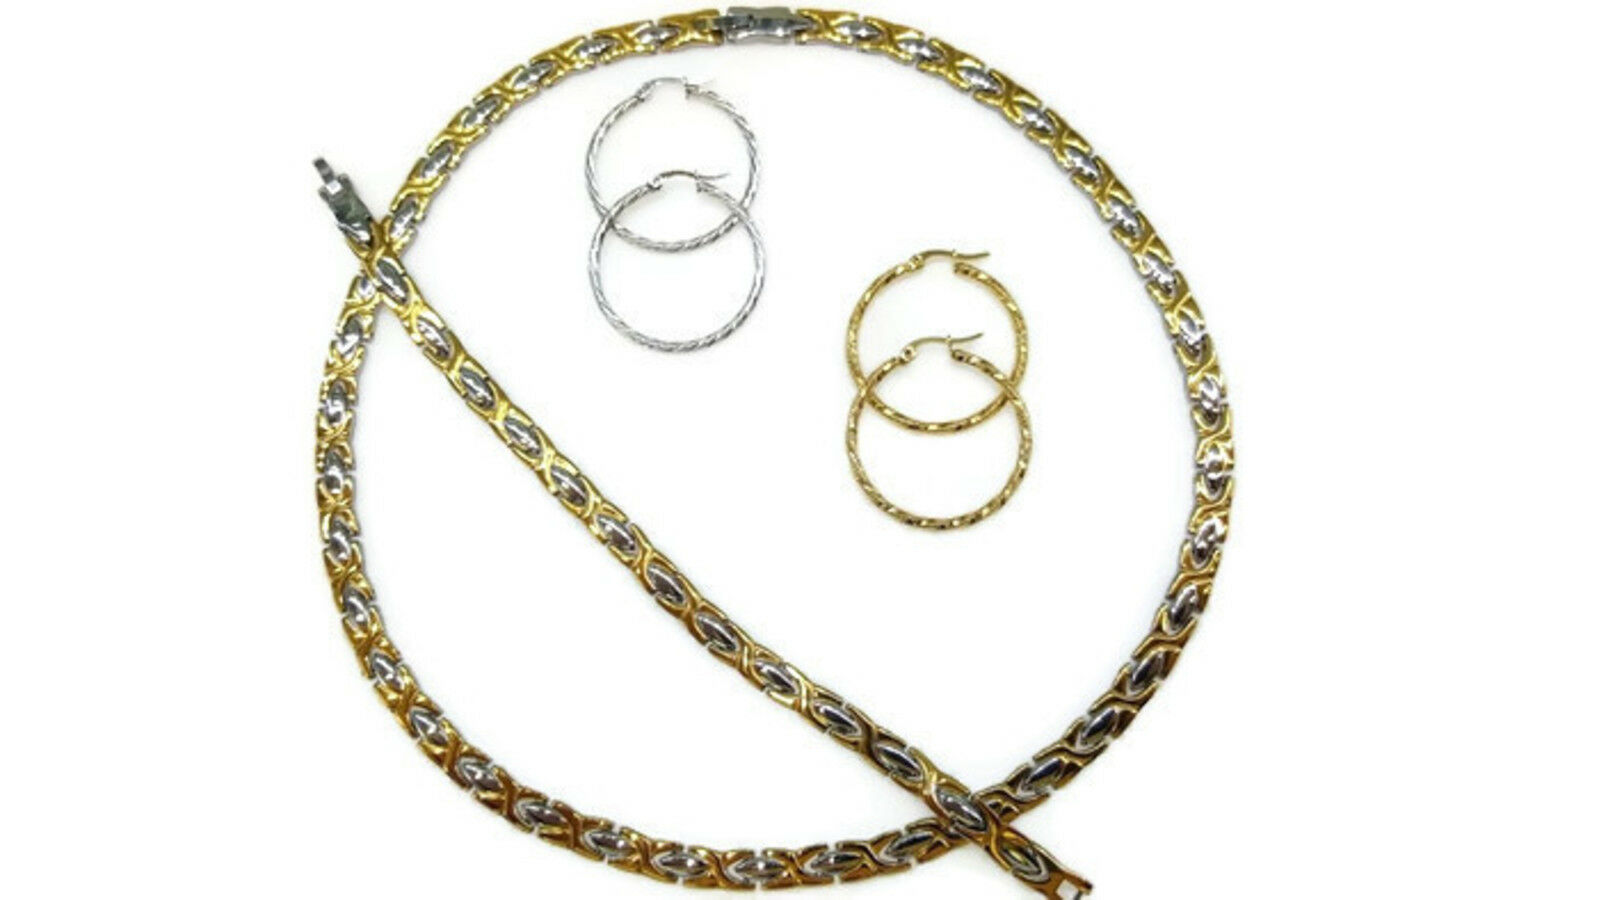 Womens Hugs /& Kisses Necklace Bracelet Set Stainless steel Gold 2 Tone Two Sets